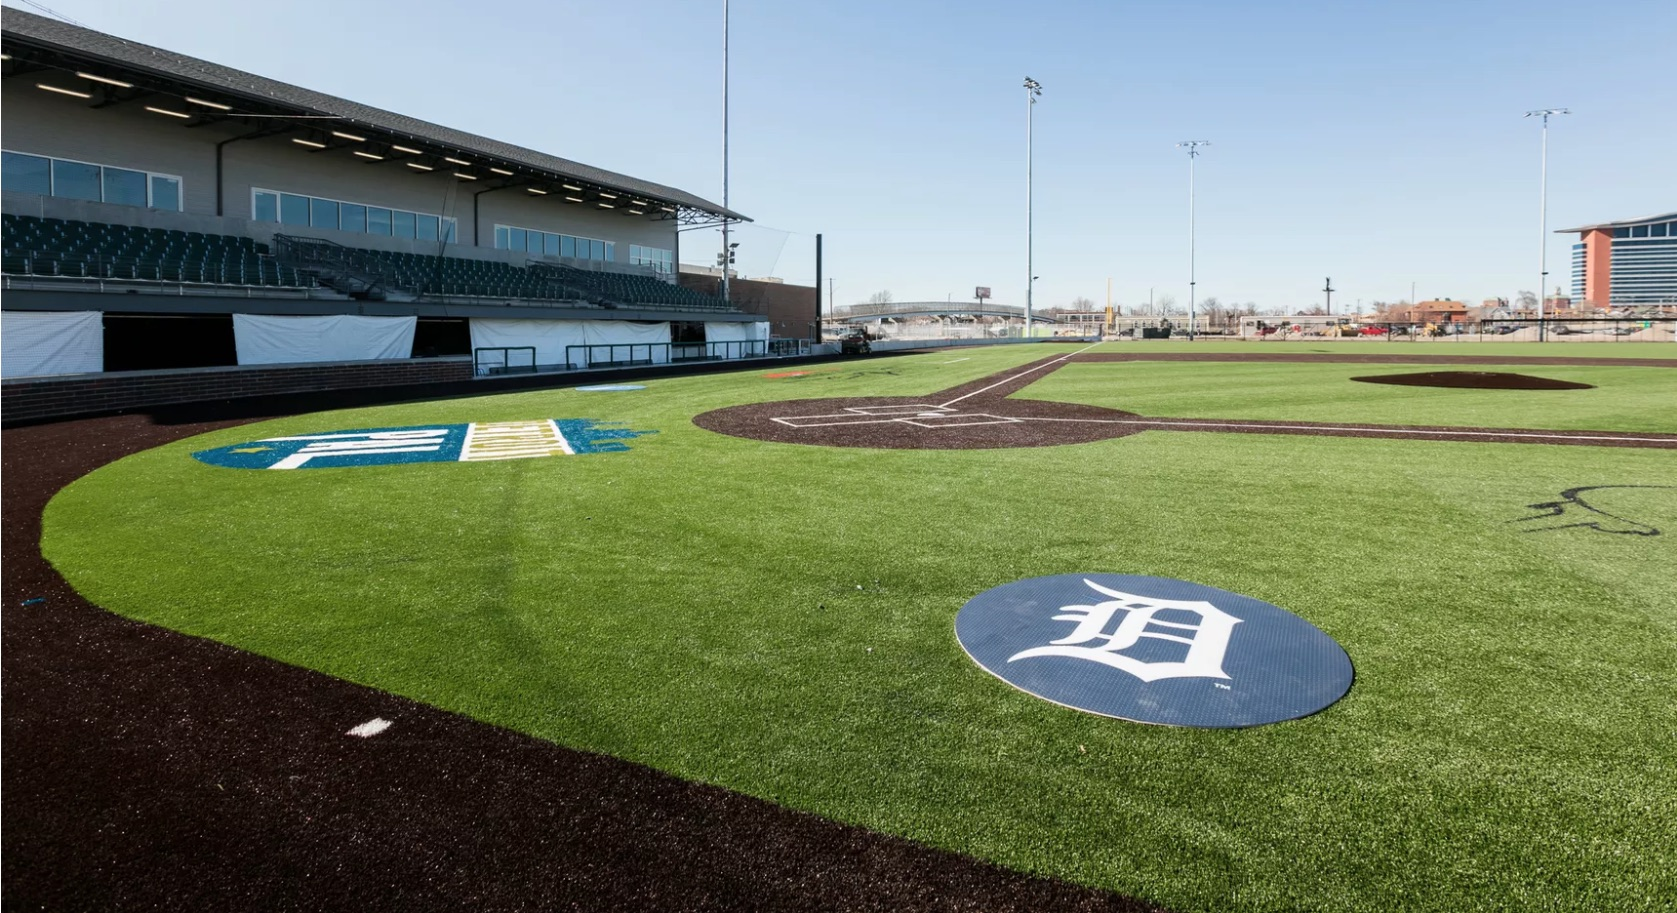 Willie Horton Field - Photo by Michelle & Chris Gerard courtesy of Curbed Detroit